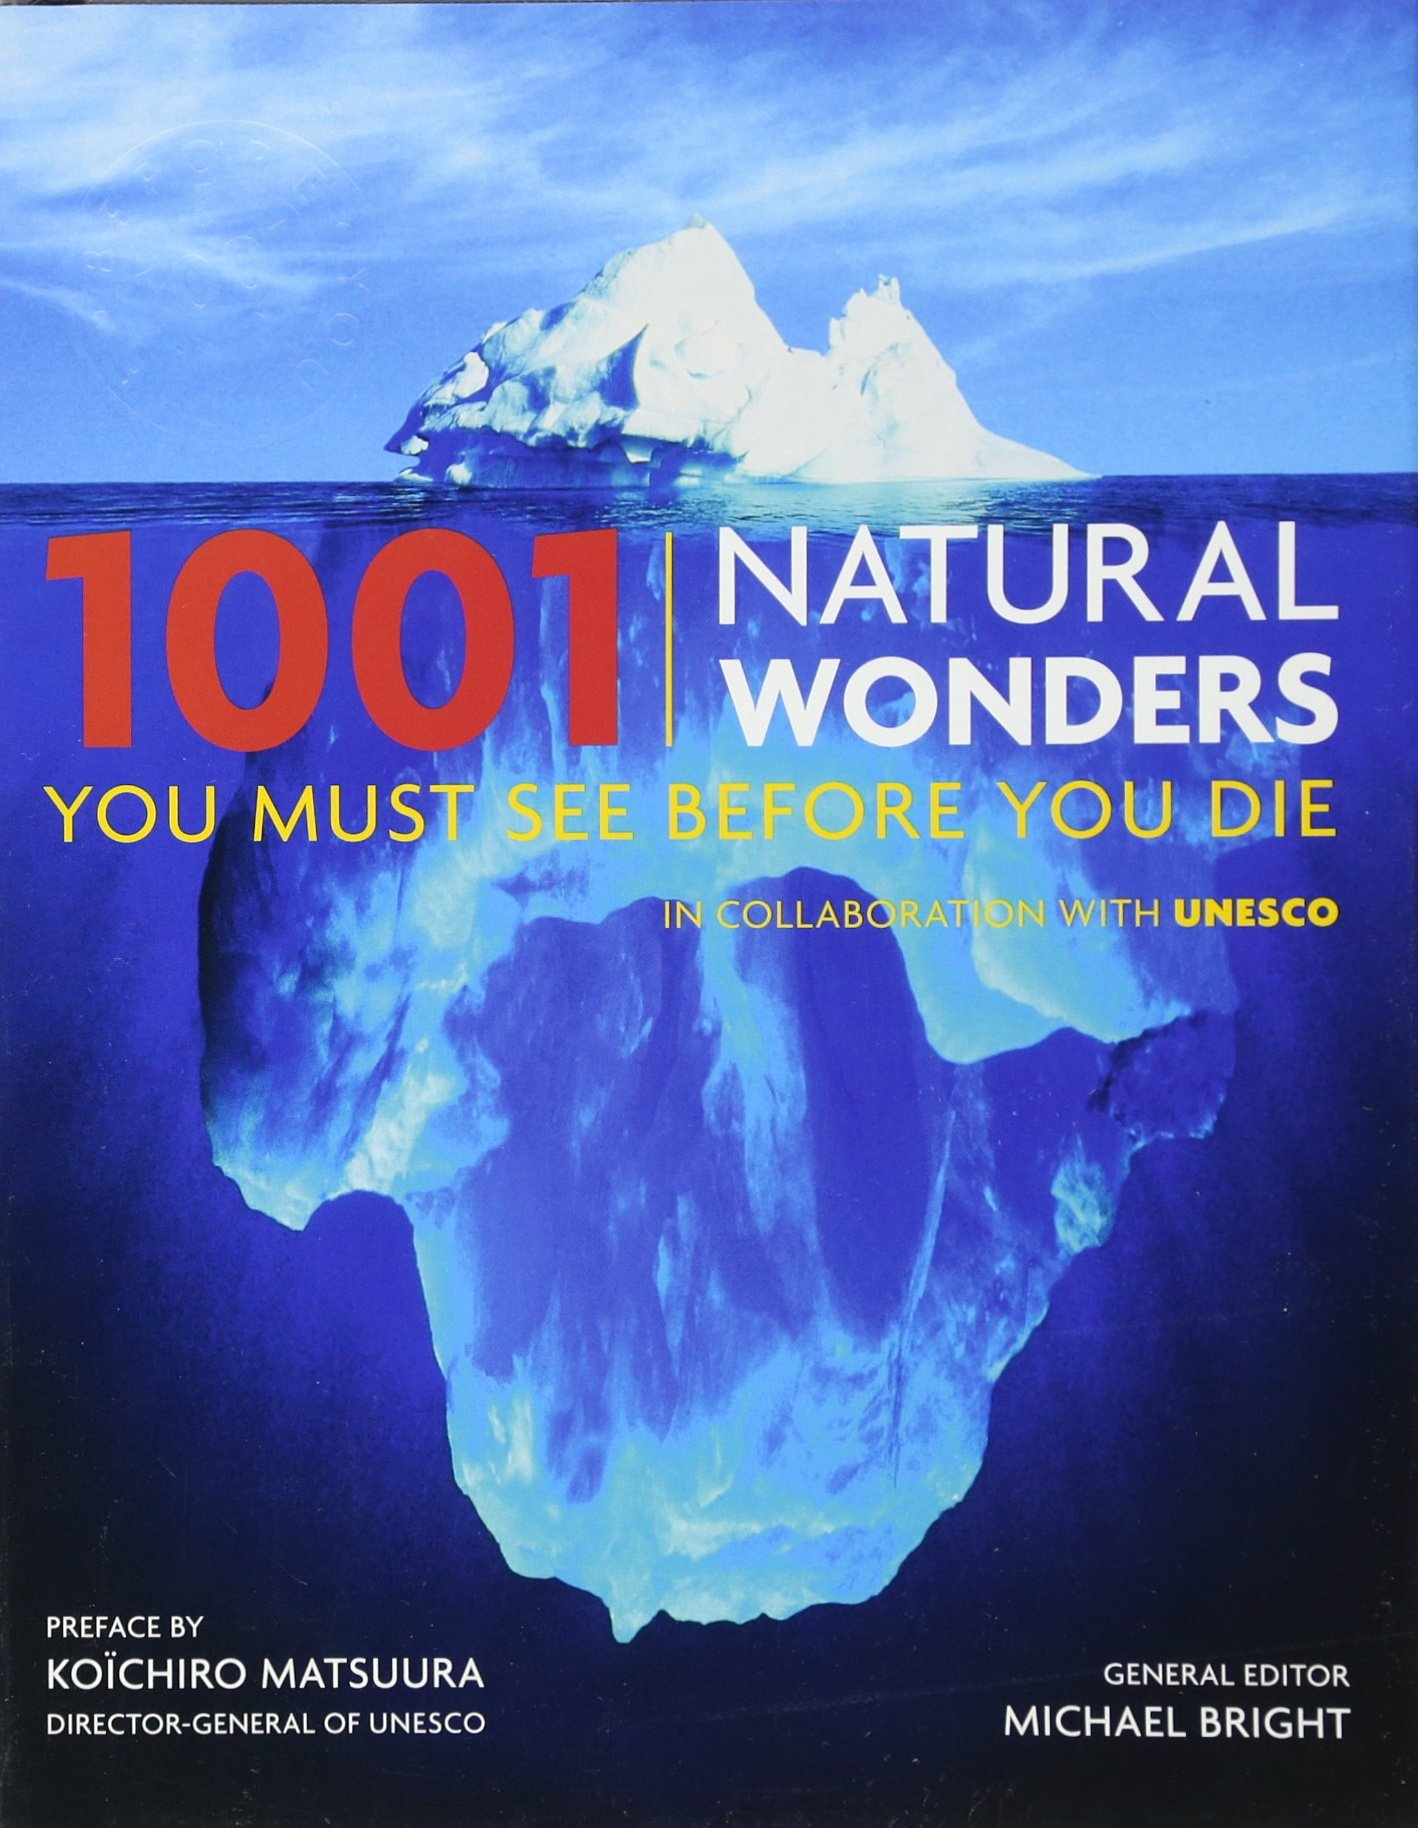 1001 Natural Wonders You Must See Before You Die: UNESCO Edition: Michael  Bright, Koichiro Matsuura: 9780764162336: Books - Amazon.ca